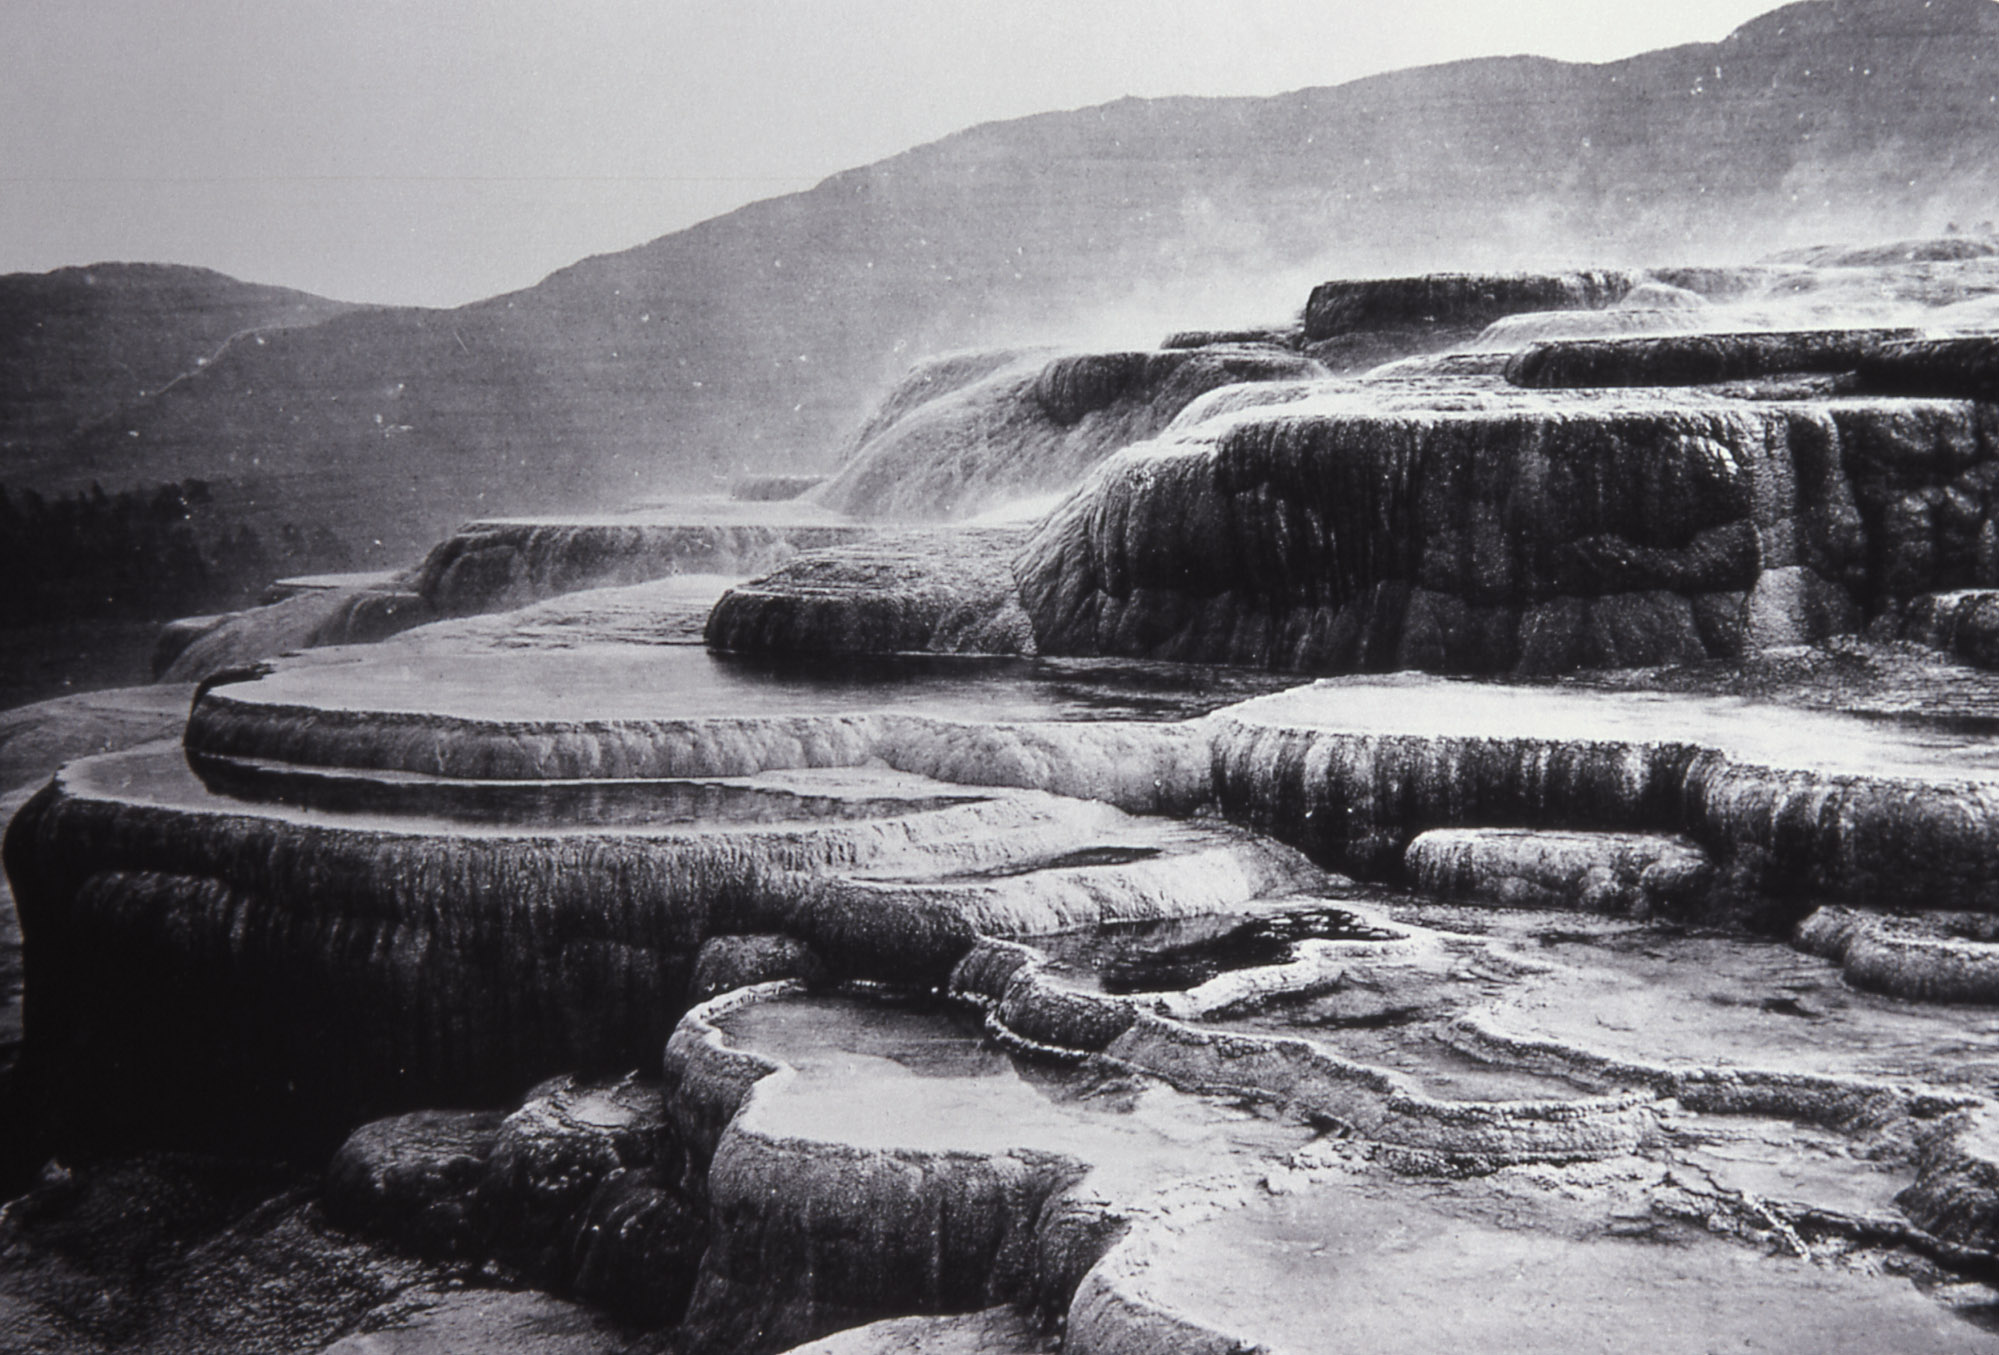 A photograph of the Summit of Jupiter Terraces taken by William H. Jackson. Paintings and photographs of Yellowstone were crucial to its establishment as a national park.